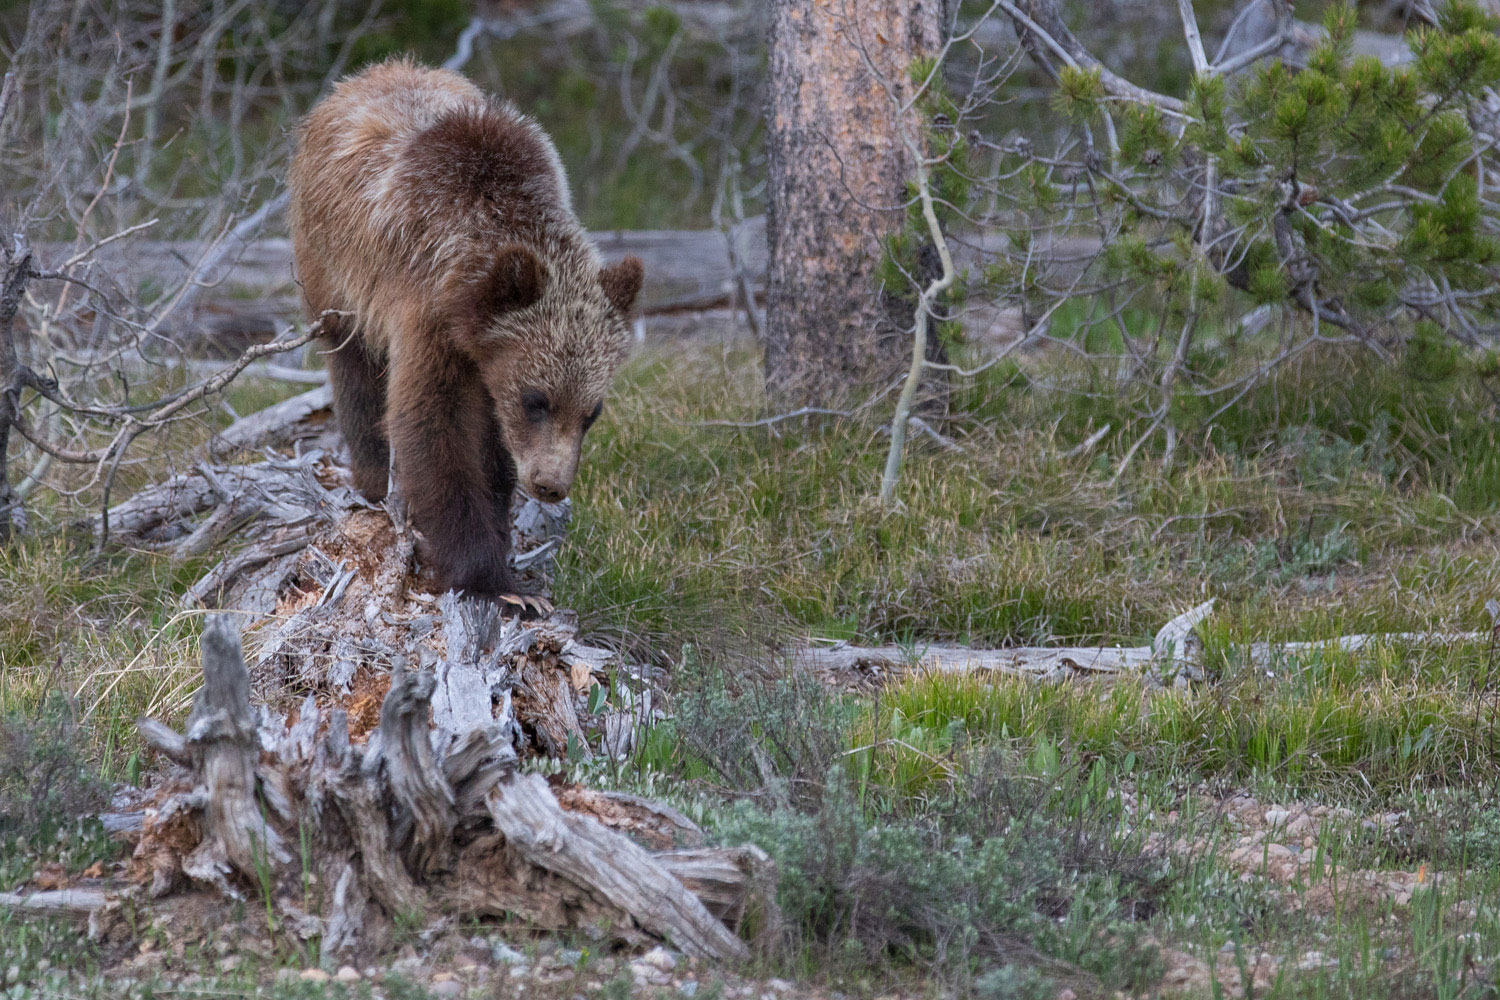 399, grizzly, bear, cub, grand teton, photo, image, 2018, photo